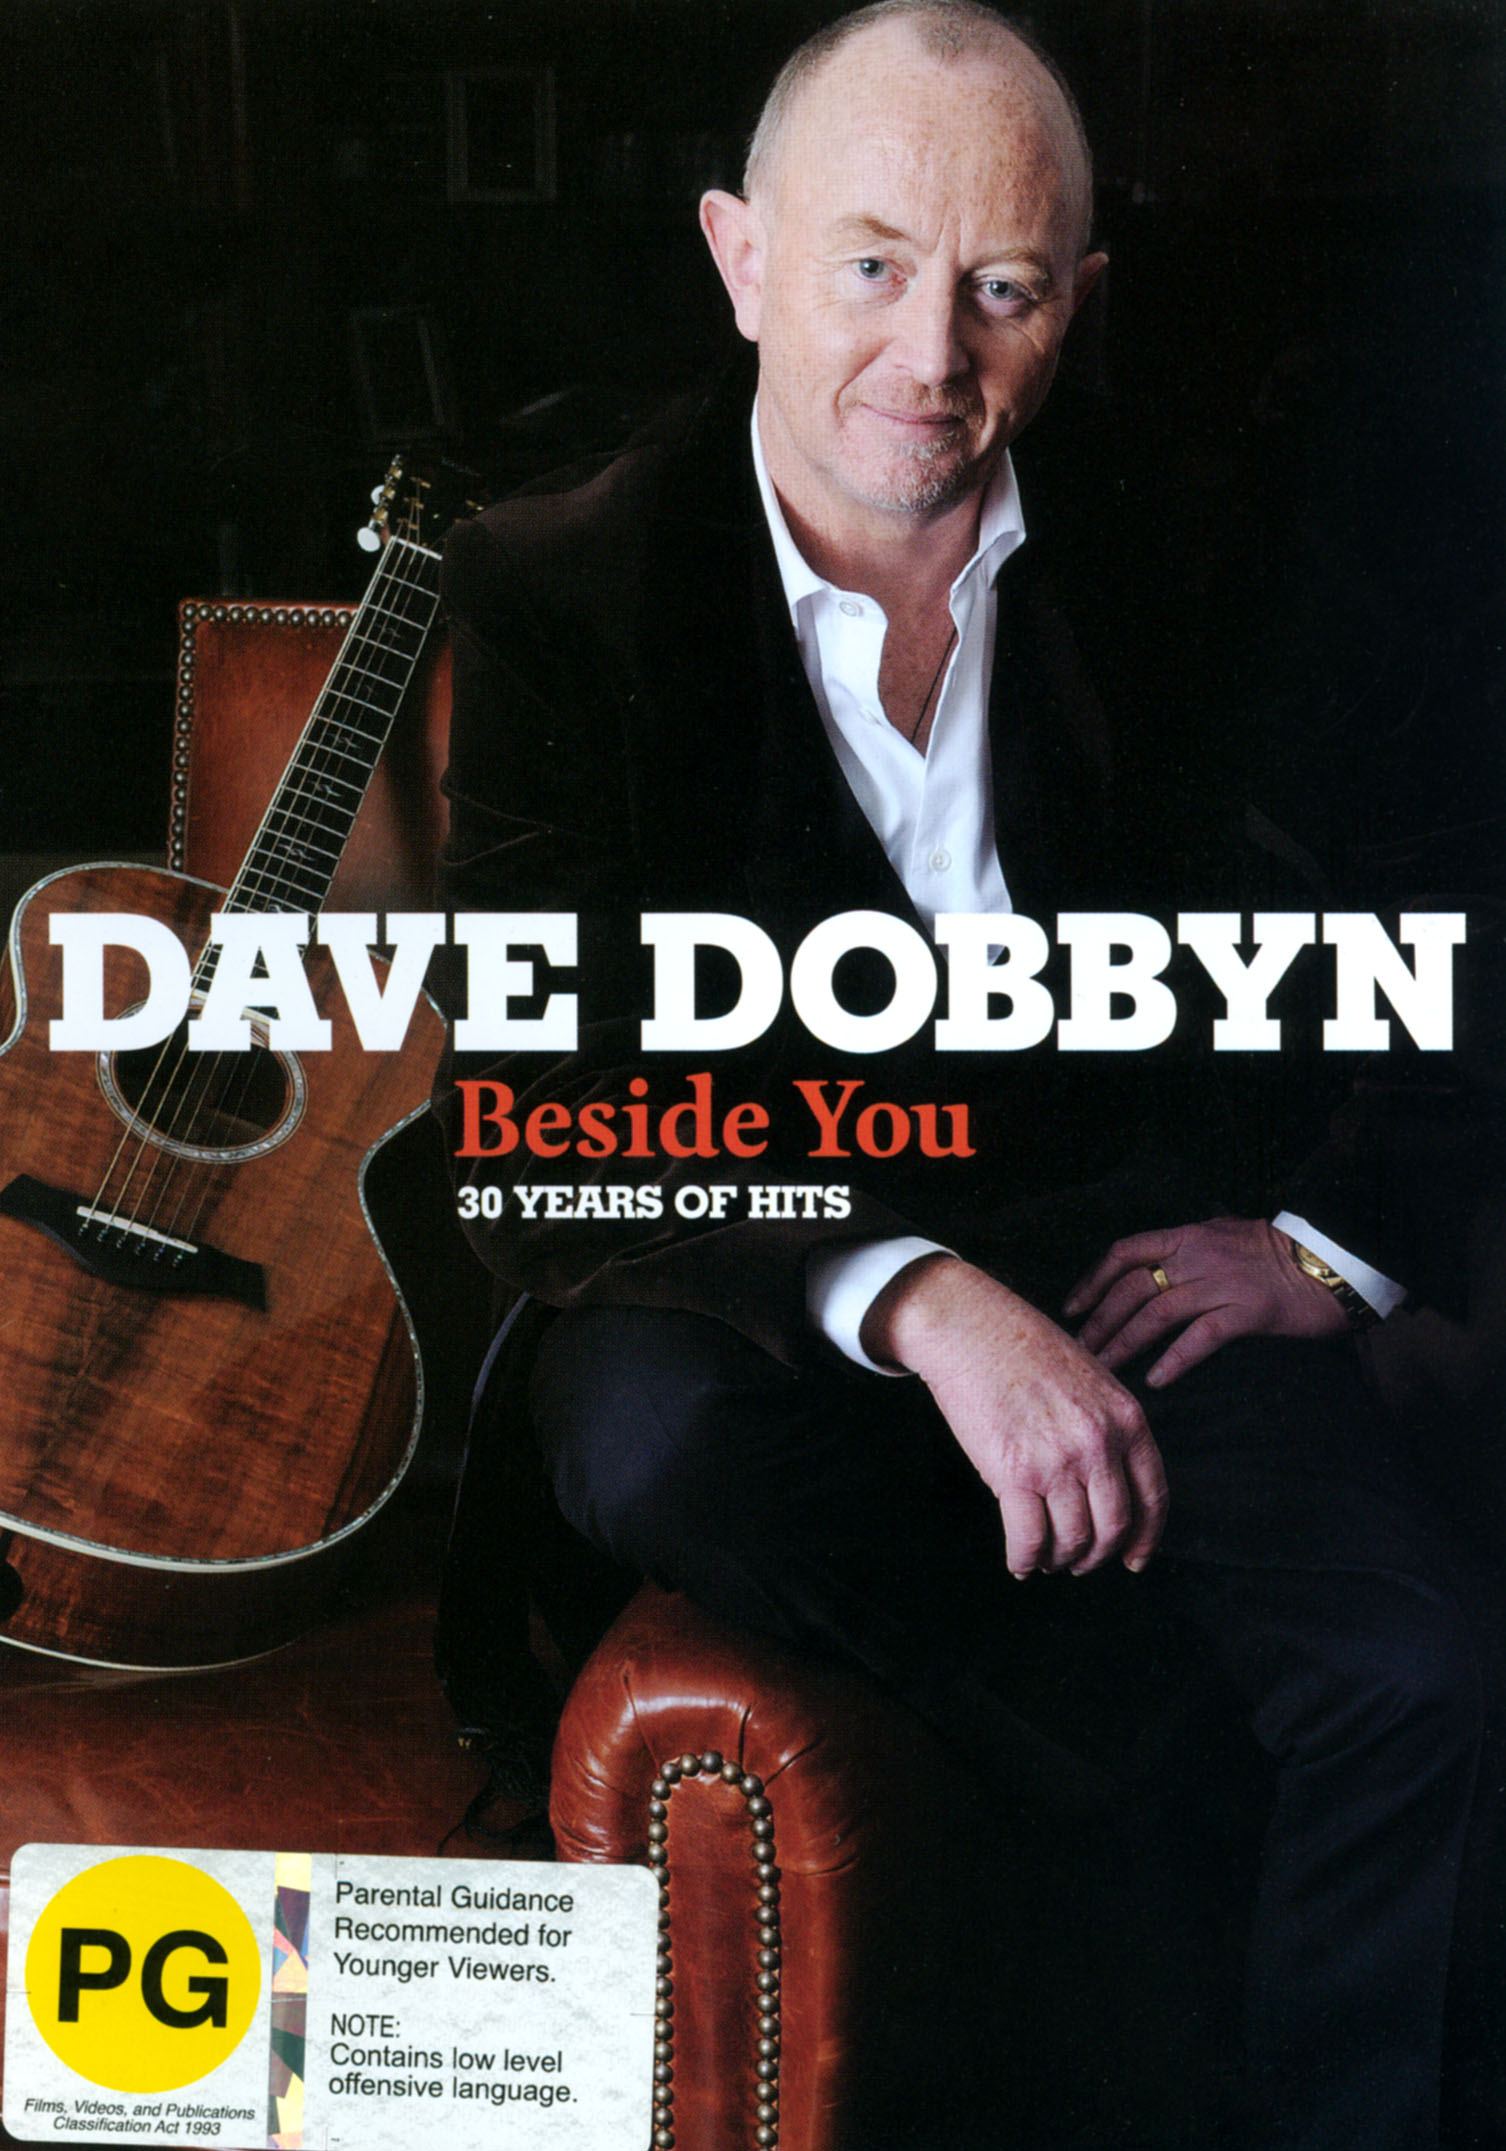 Dave Dobbyn: Beside You - 30 Years on the Road